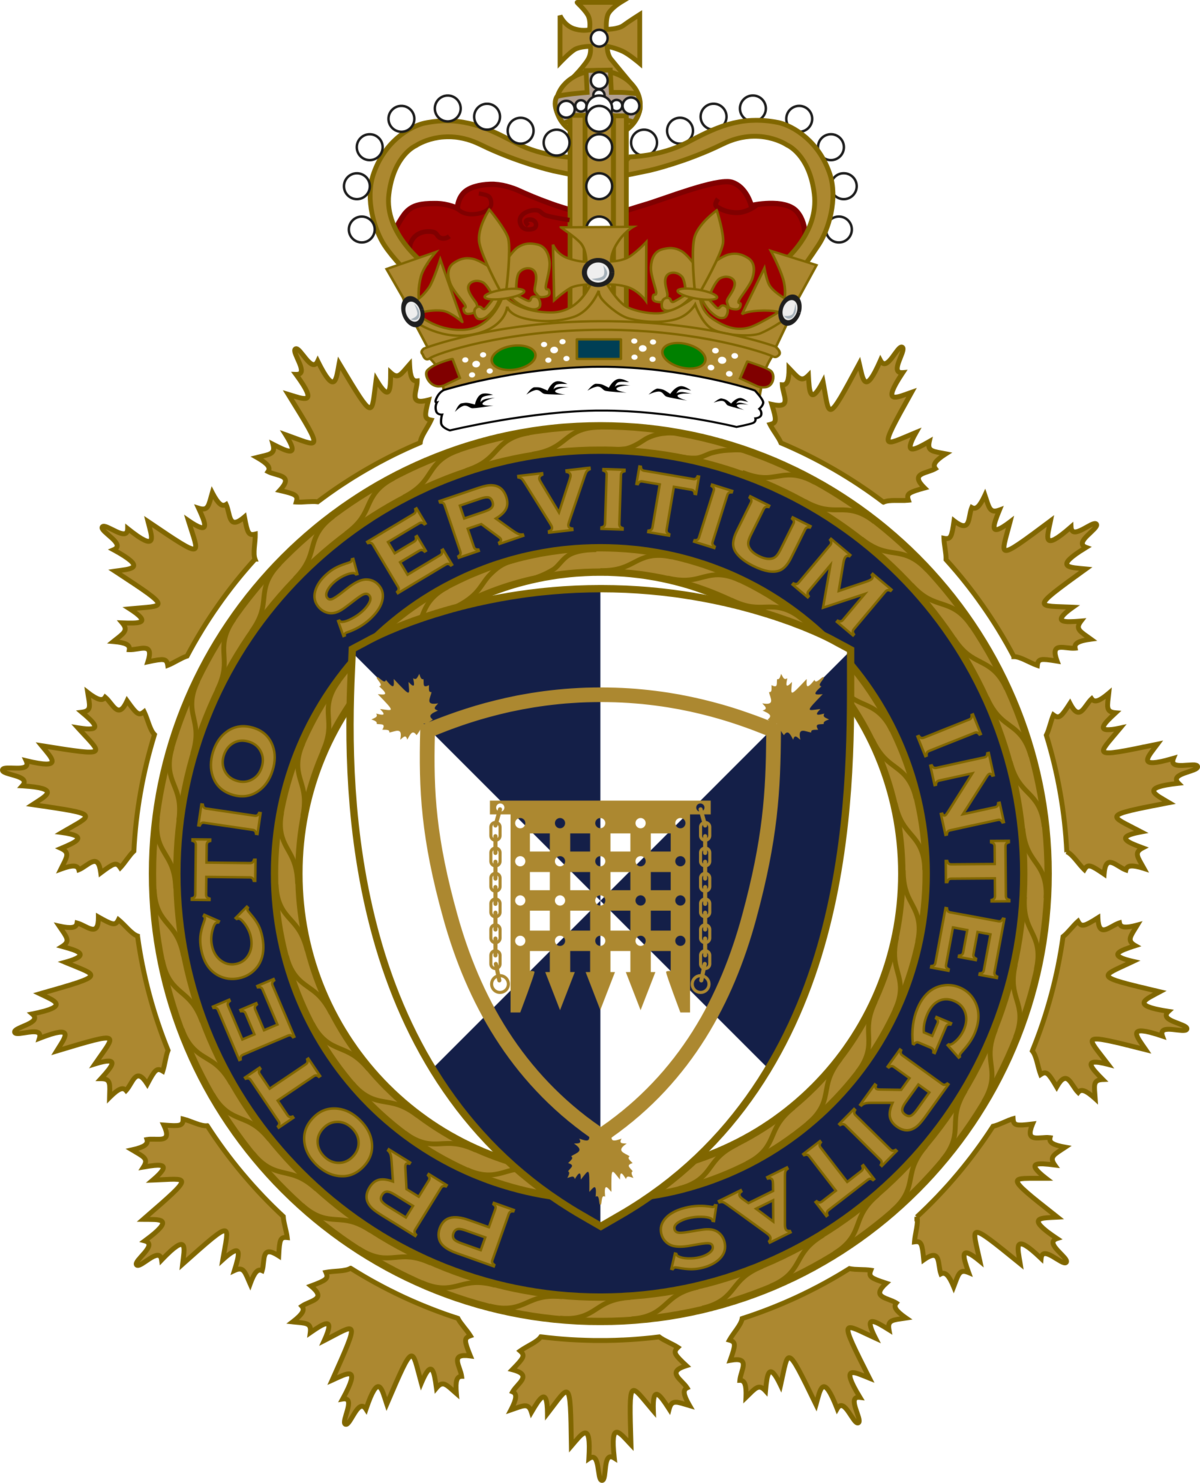 Canada services agency wikipedia. Crest border png png download